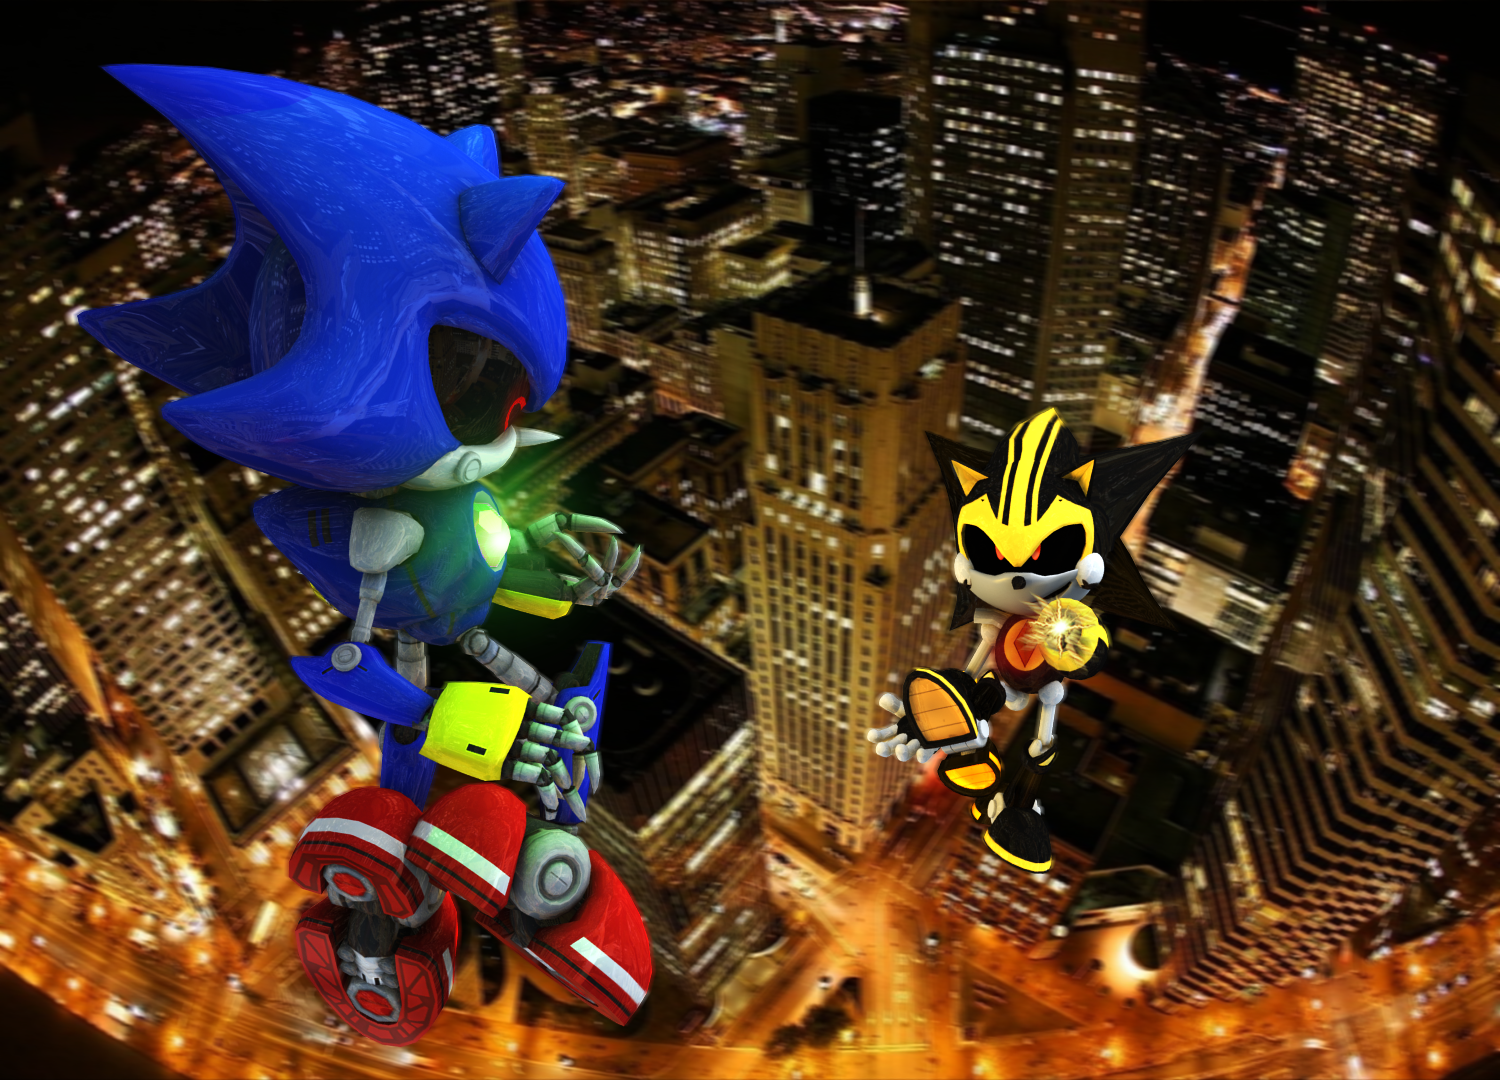 shard_vs_metal_sonic_by_jackydik-d9z0pt2